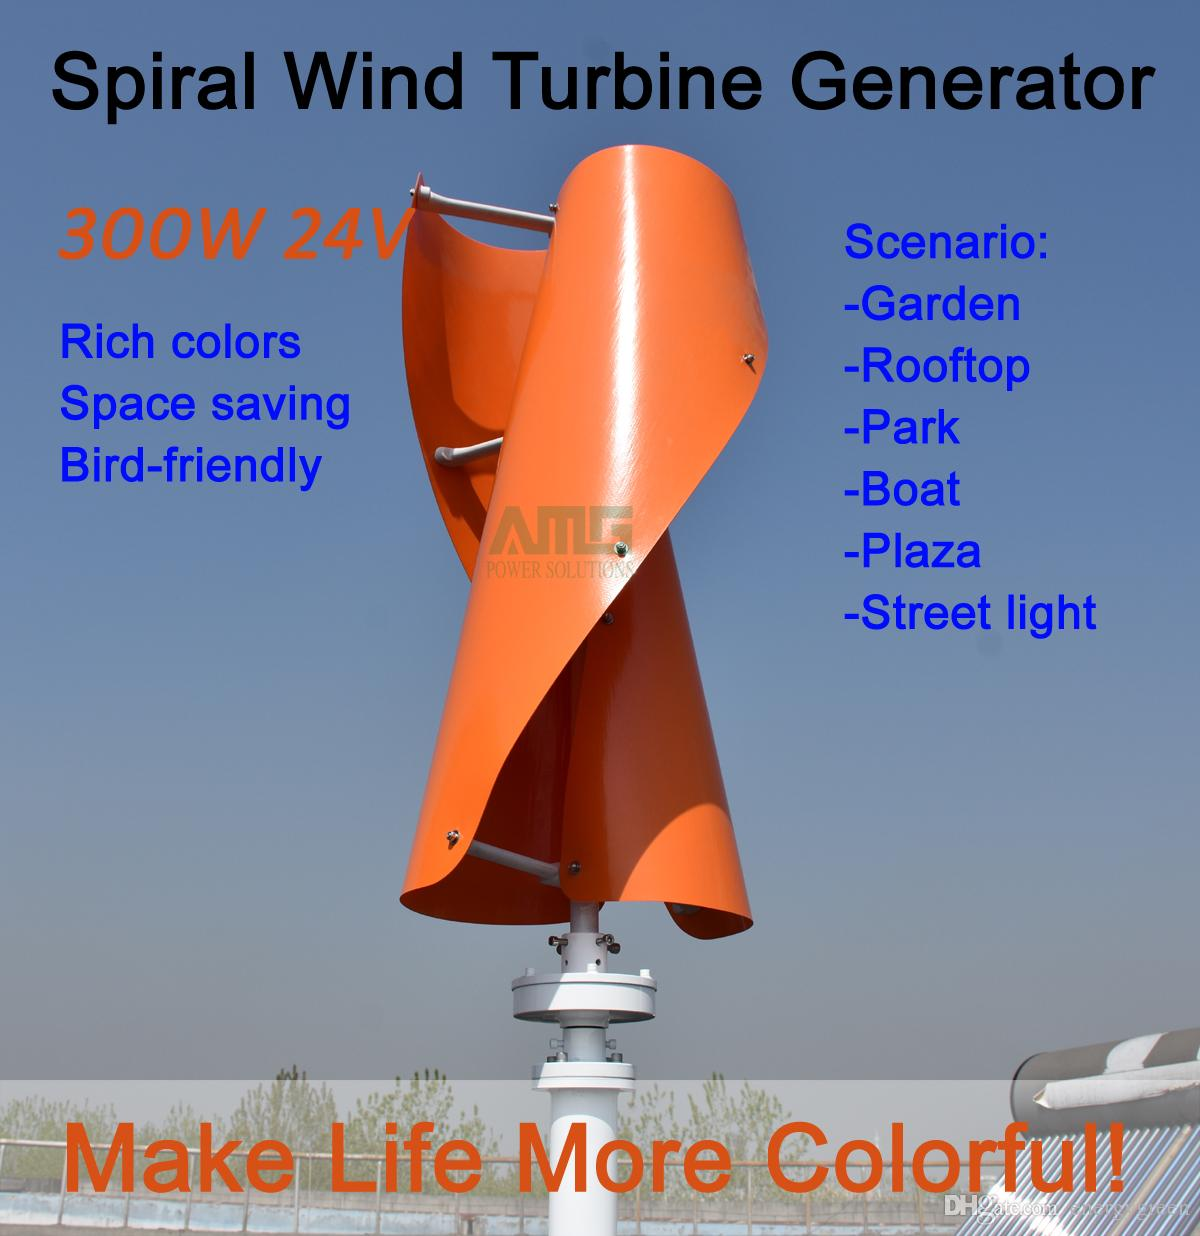 Amg 300w 24v Vertical Axis Spiral Wind Turbine Generator For Garden 3 Phase Wiring Diagram Rooftop Park Boat Plaza Street Light Decoration Home Output